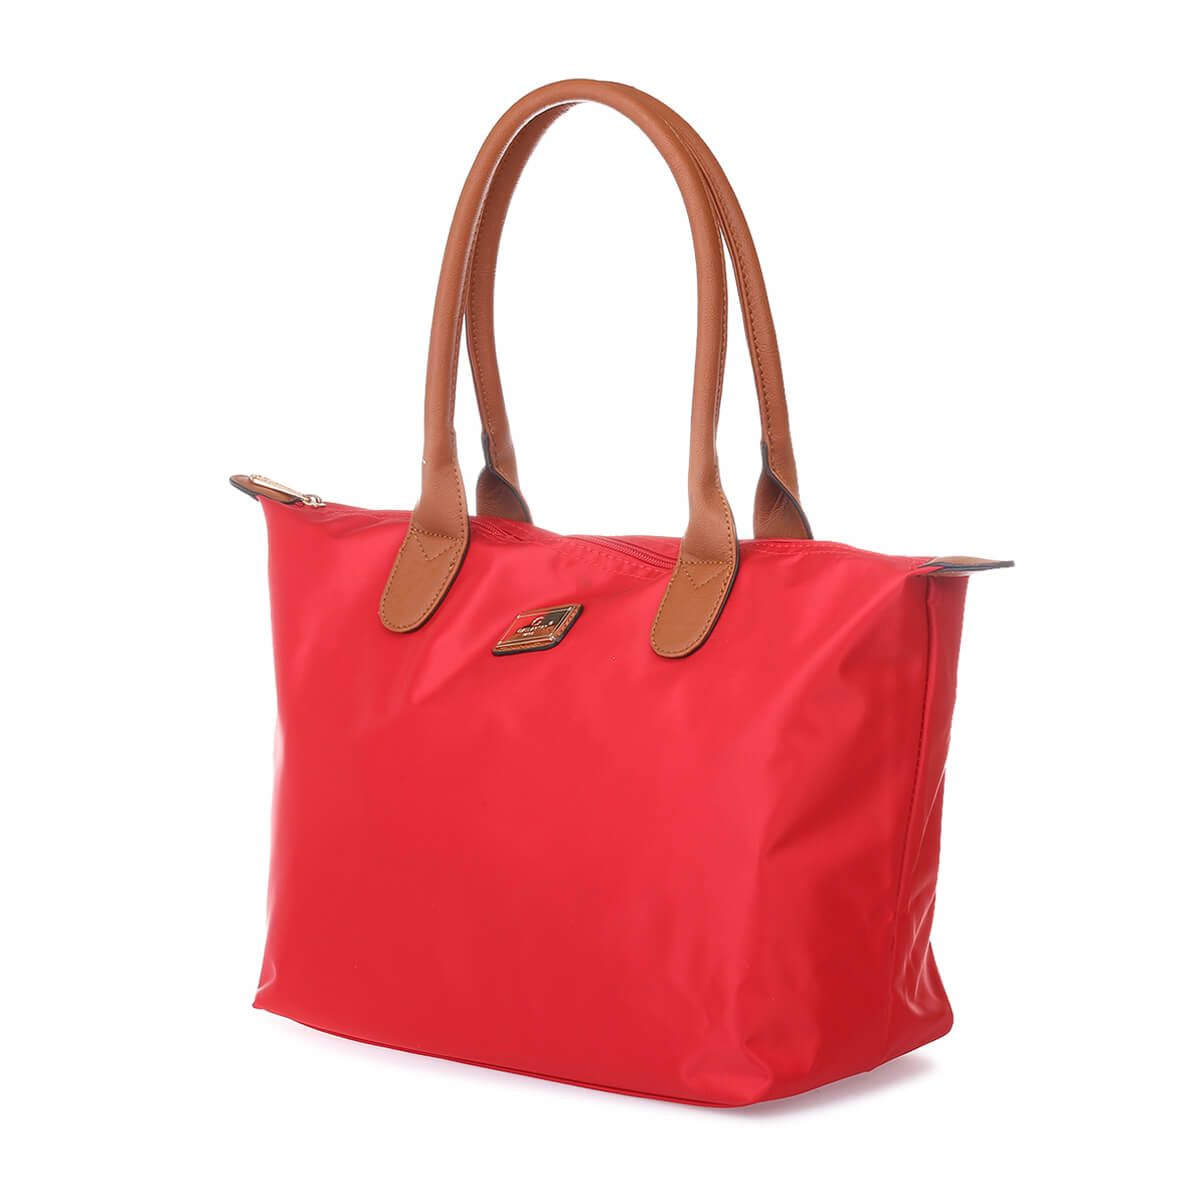 Sac cabas rouge medium style shopping